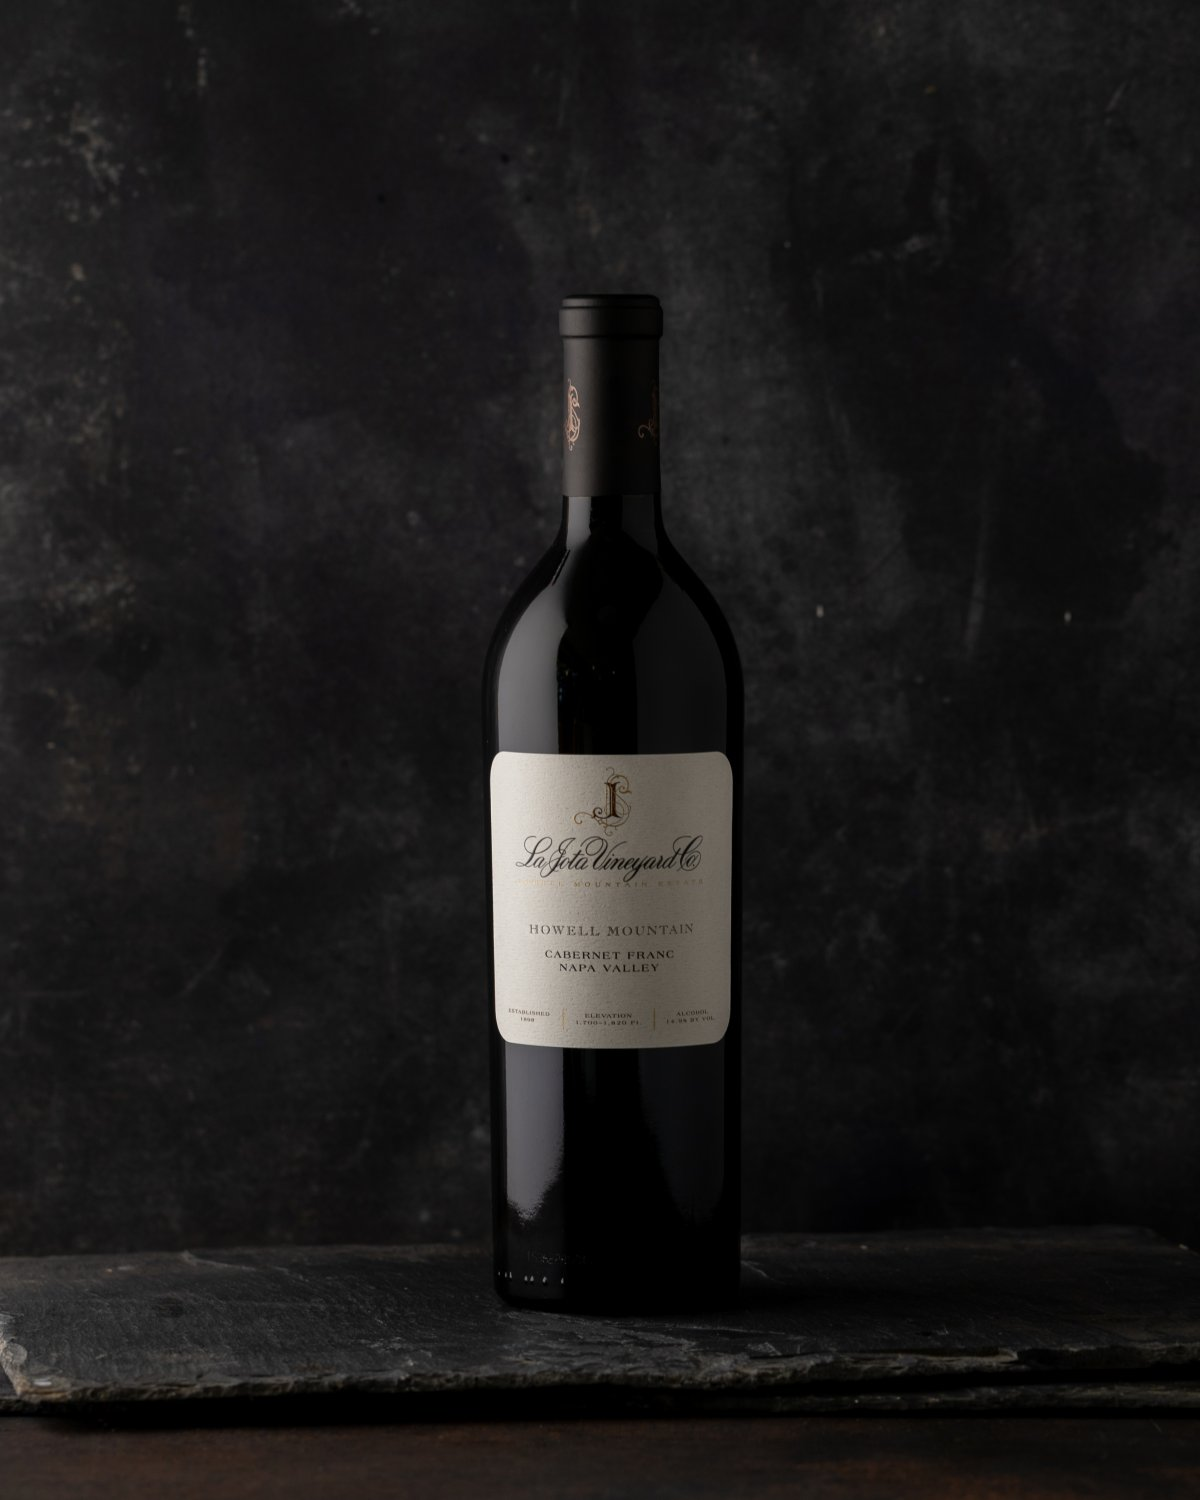 2011 La Jota Howell Mountain Cabernet Franc